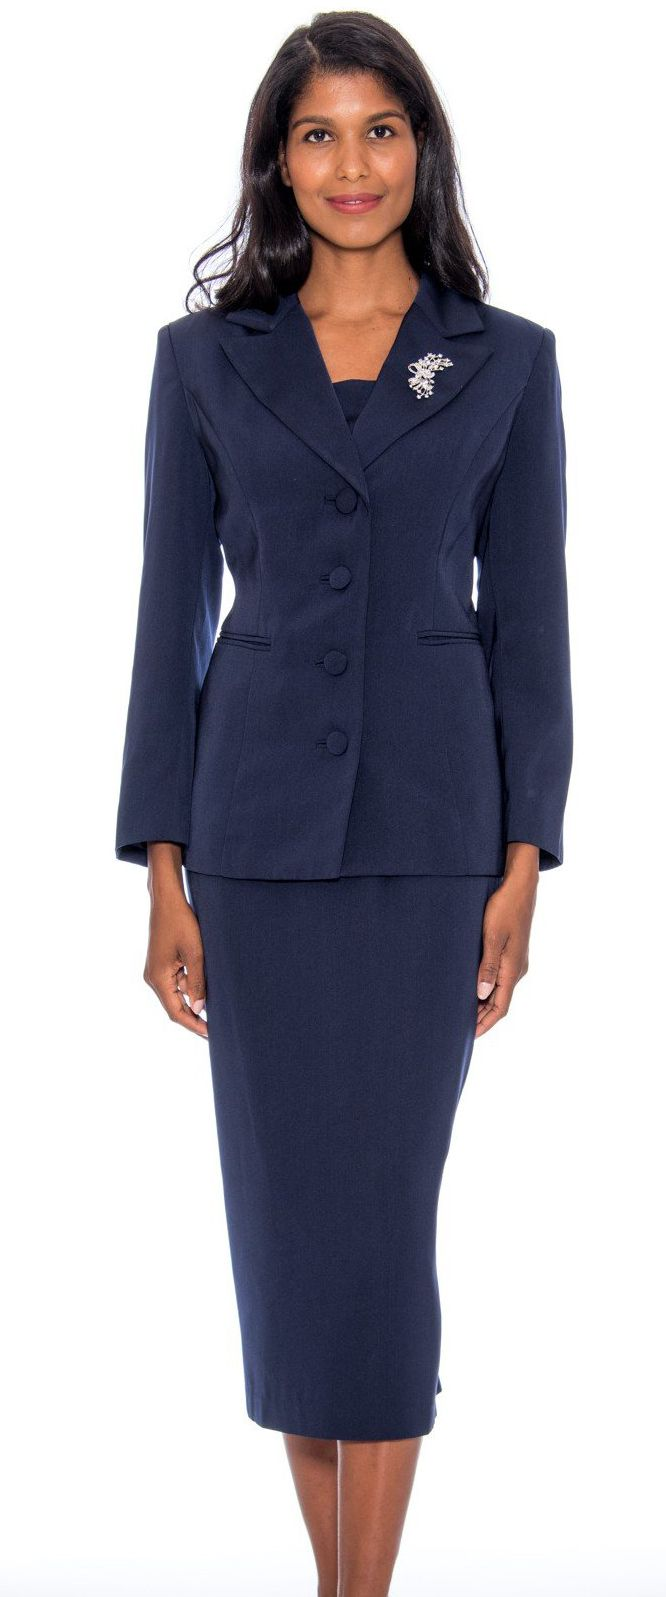 GMI Usher Suit 13382-Navy - Church Suits For Less